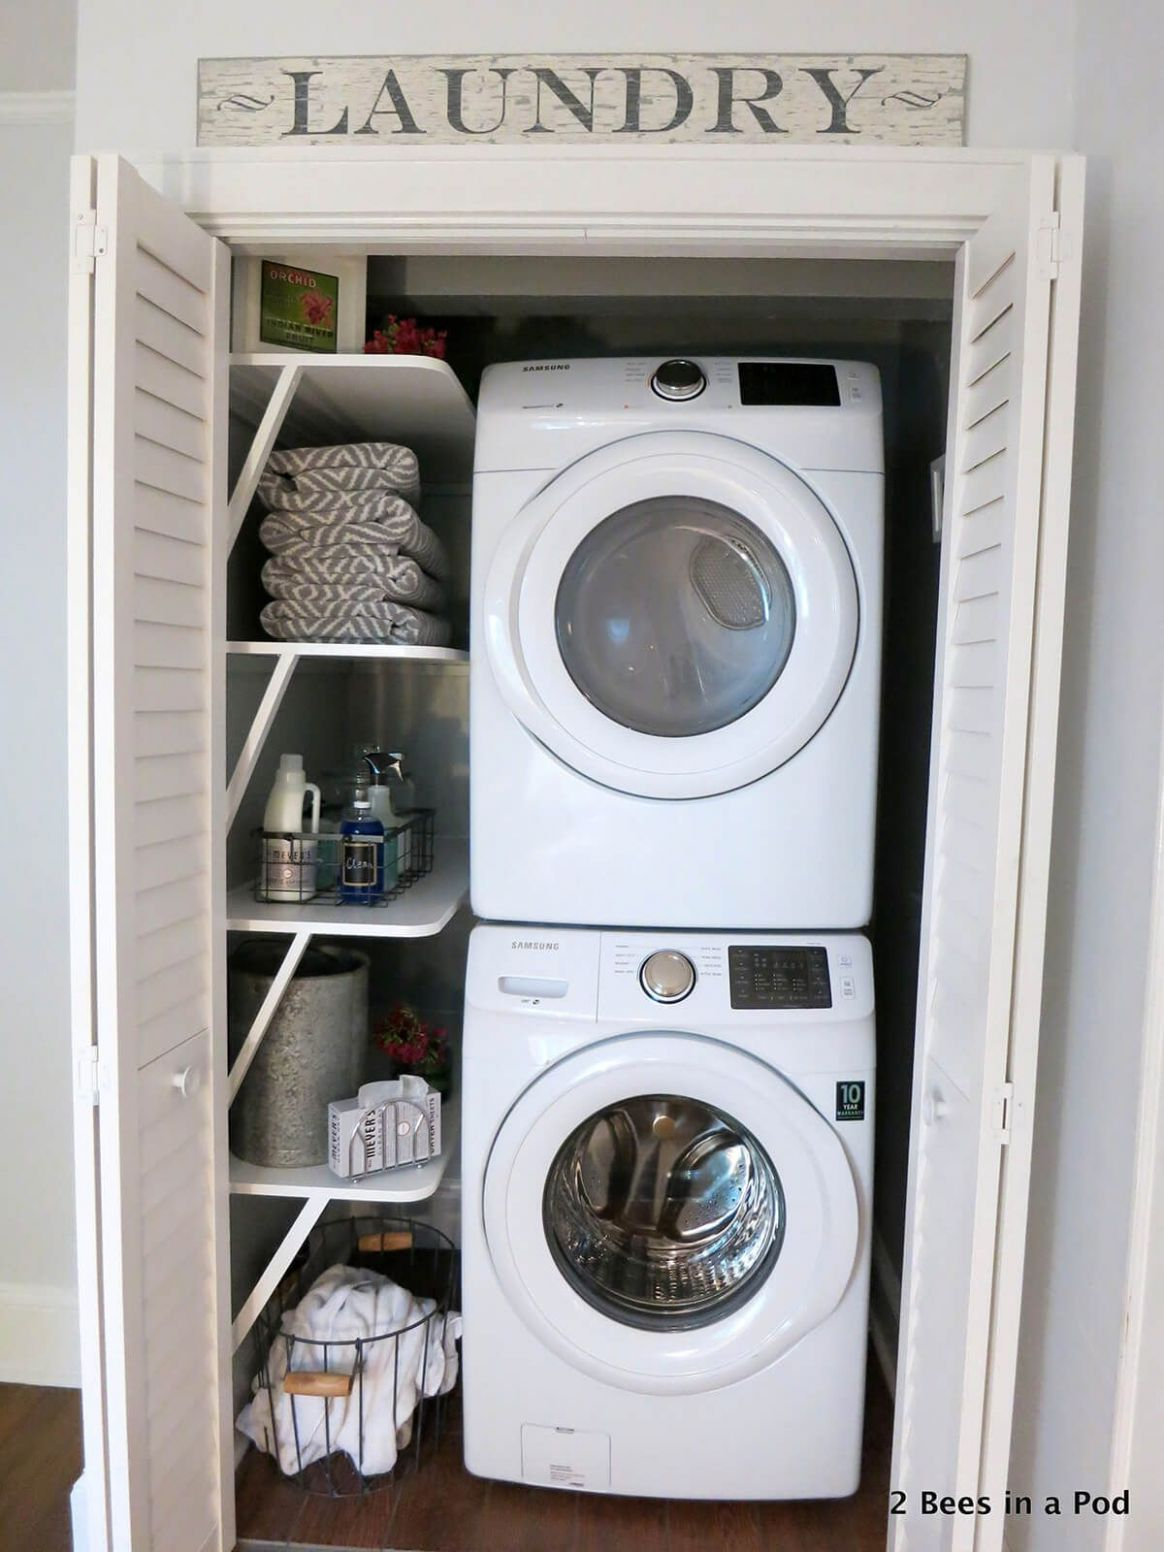 Pin en farm - laundry room ideas in closet